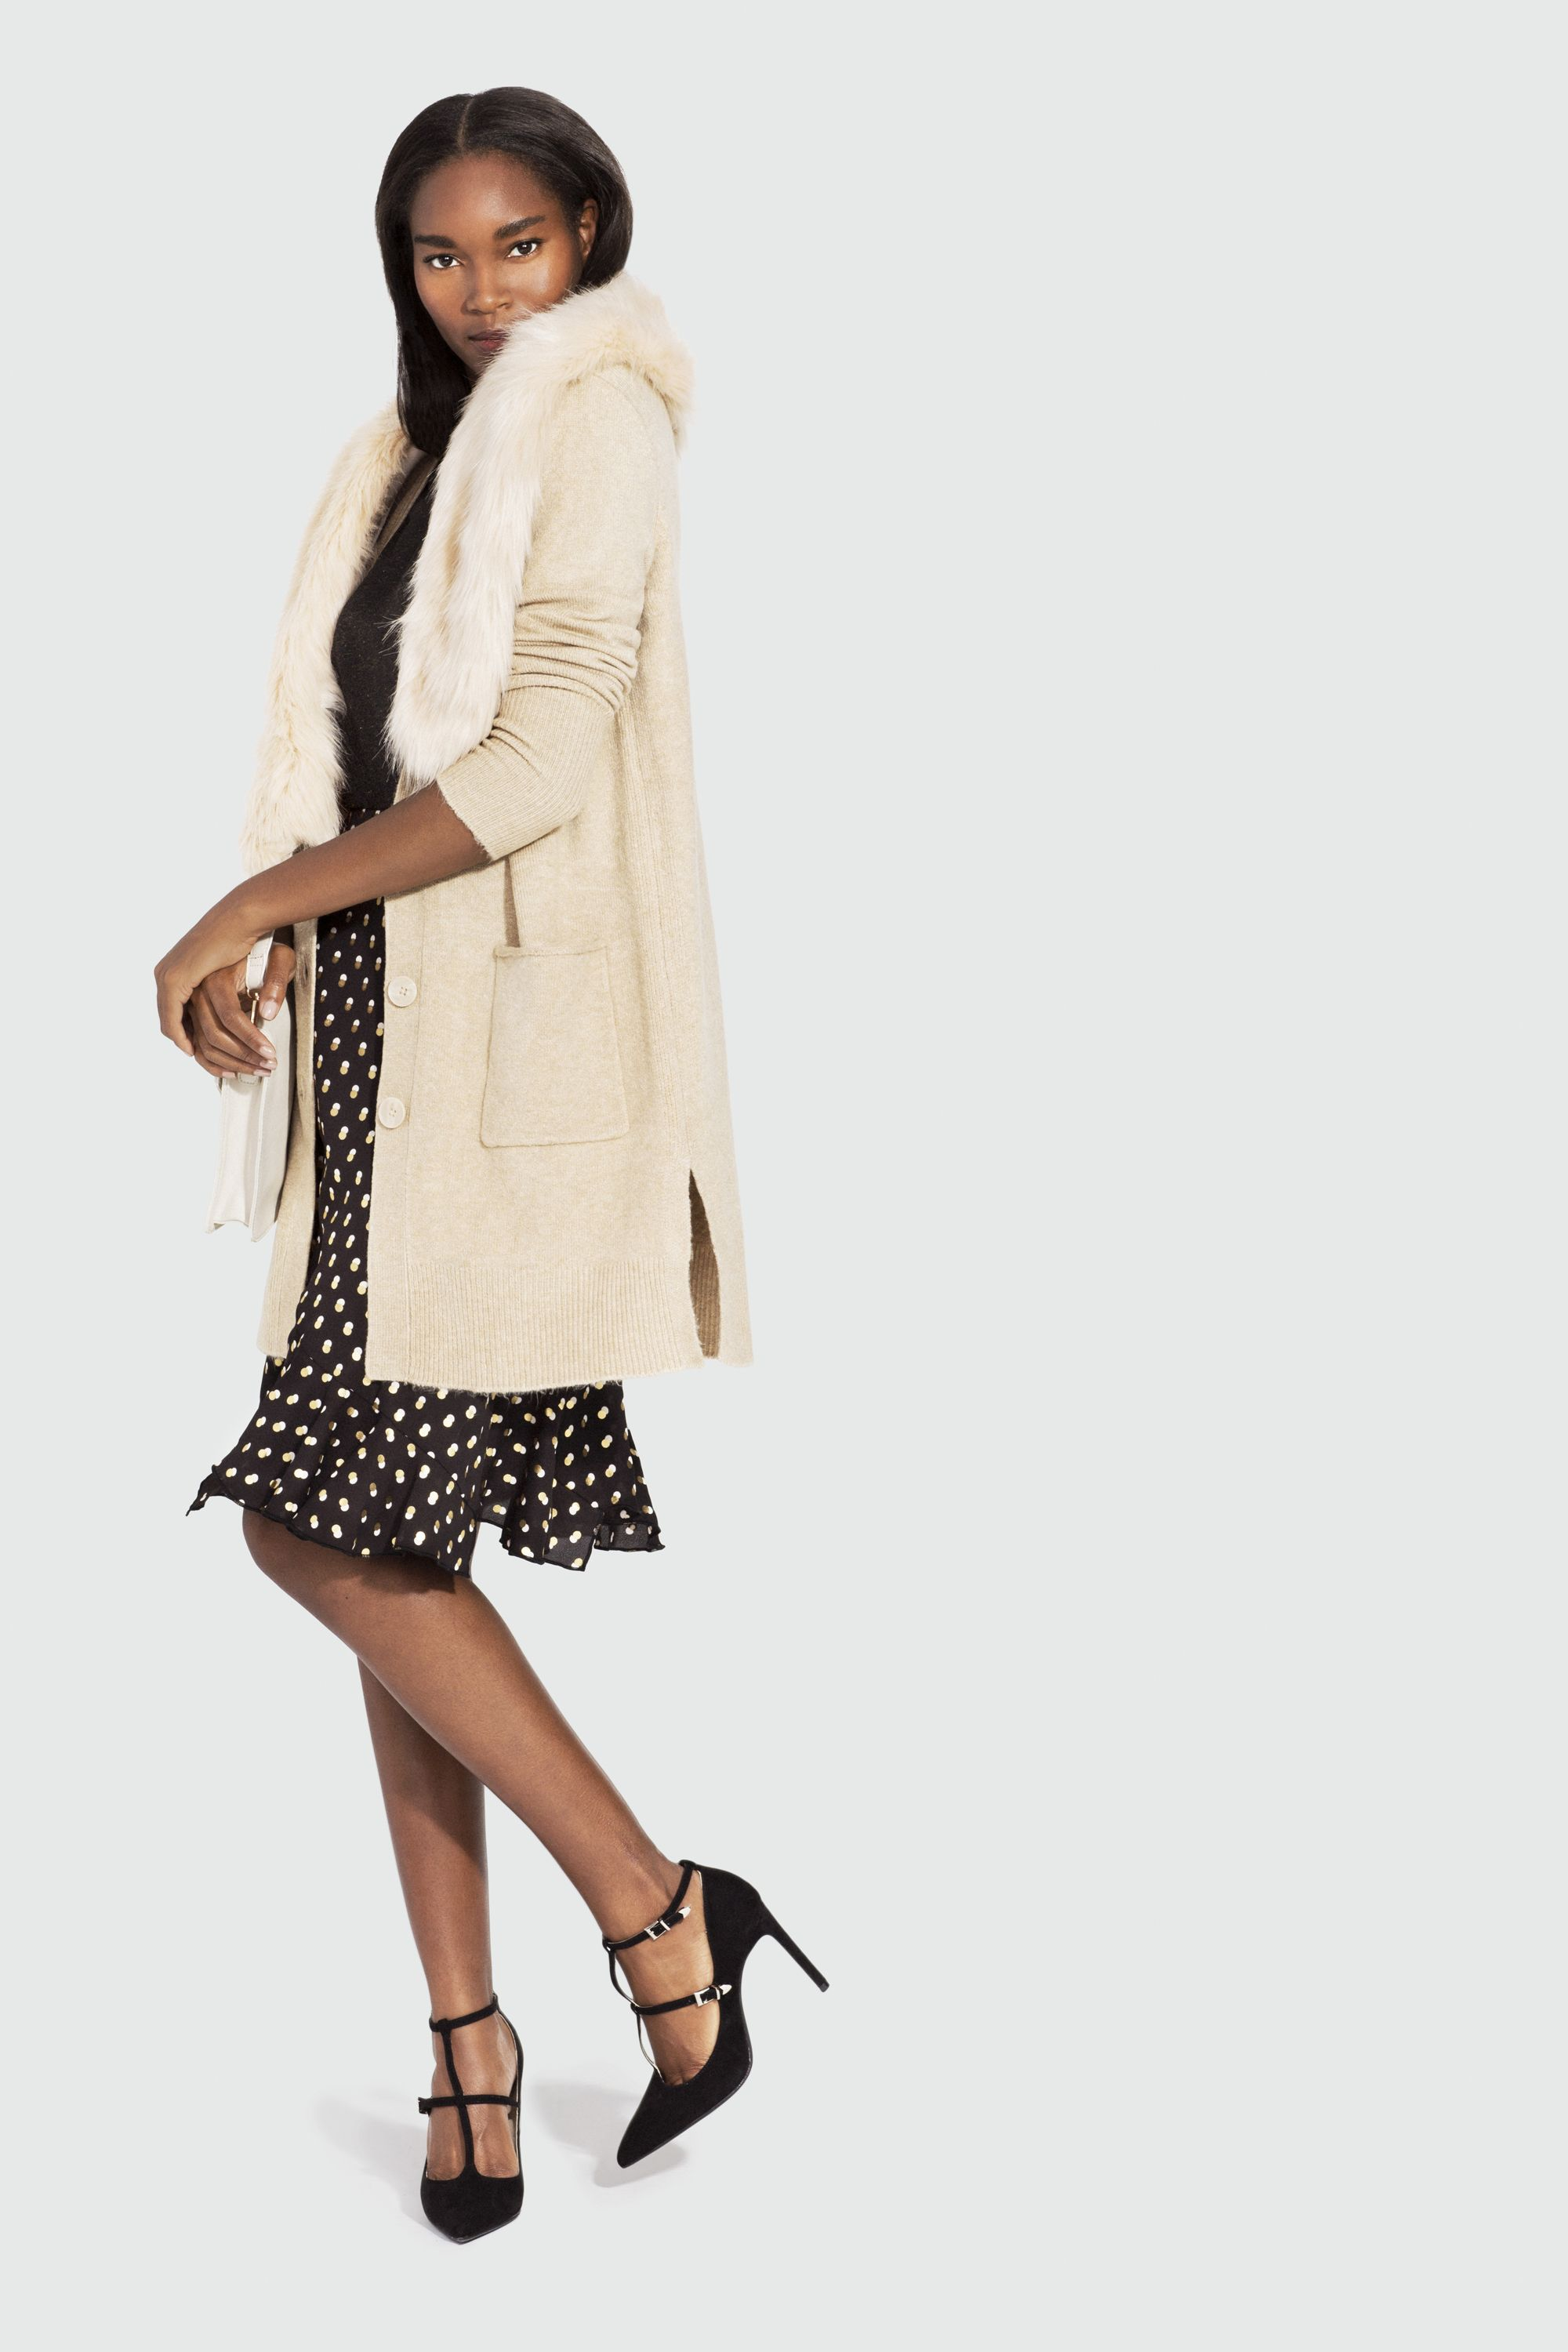 Unfussy Holiday Outfit Ideas Courtesy of Who What Wear for Target's Lookbook